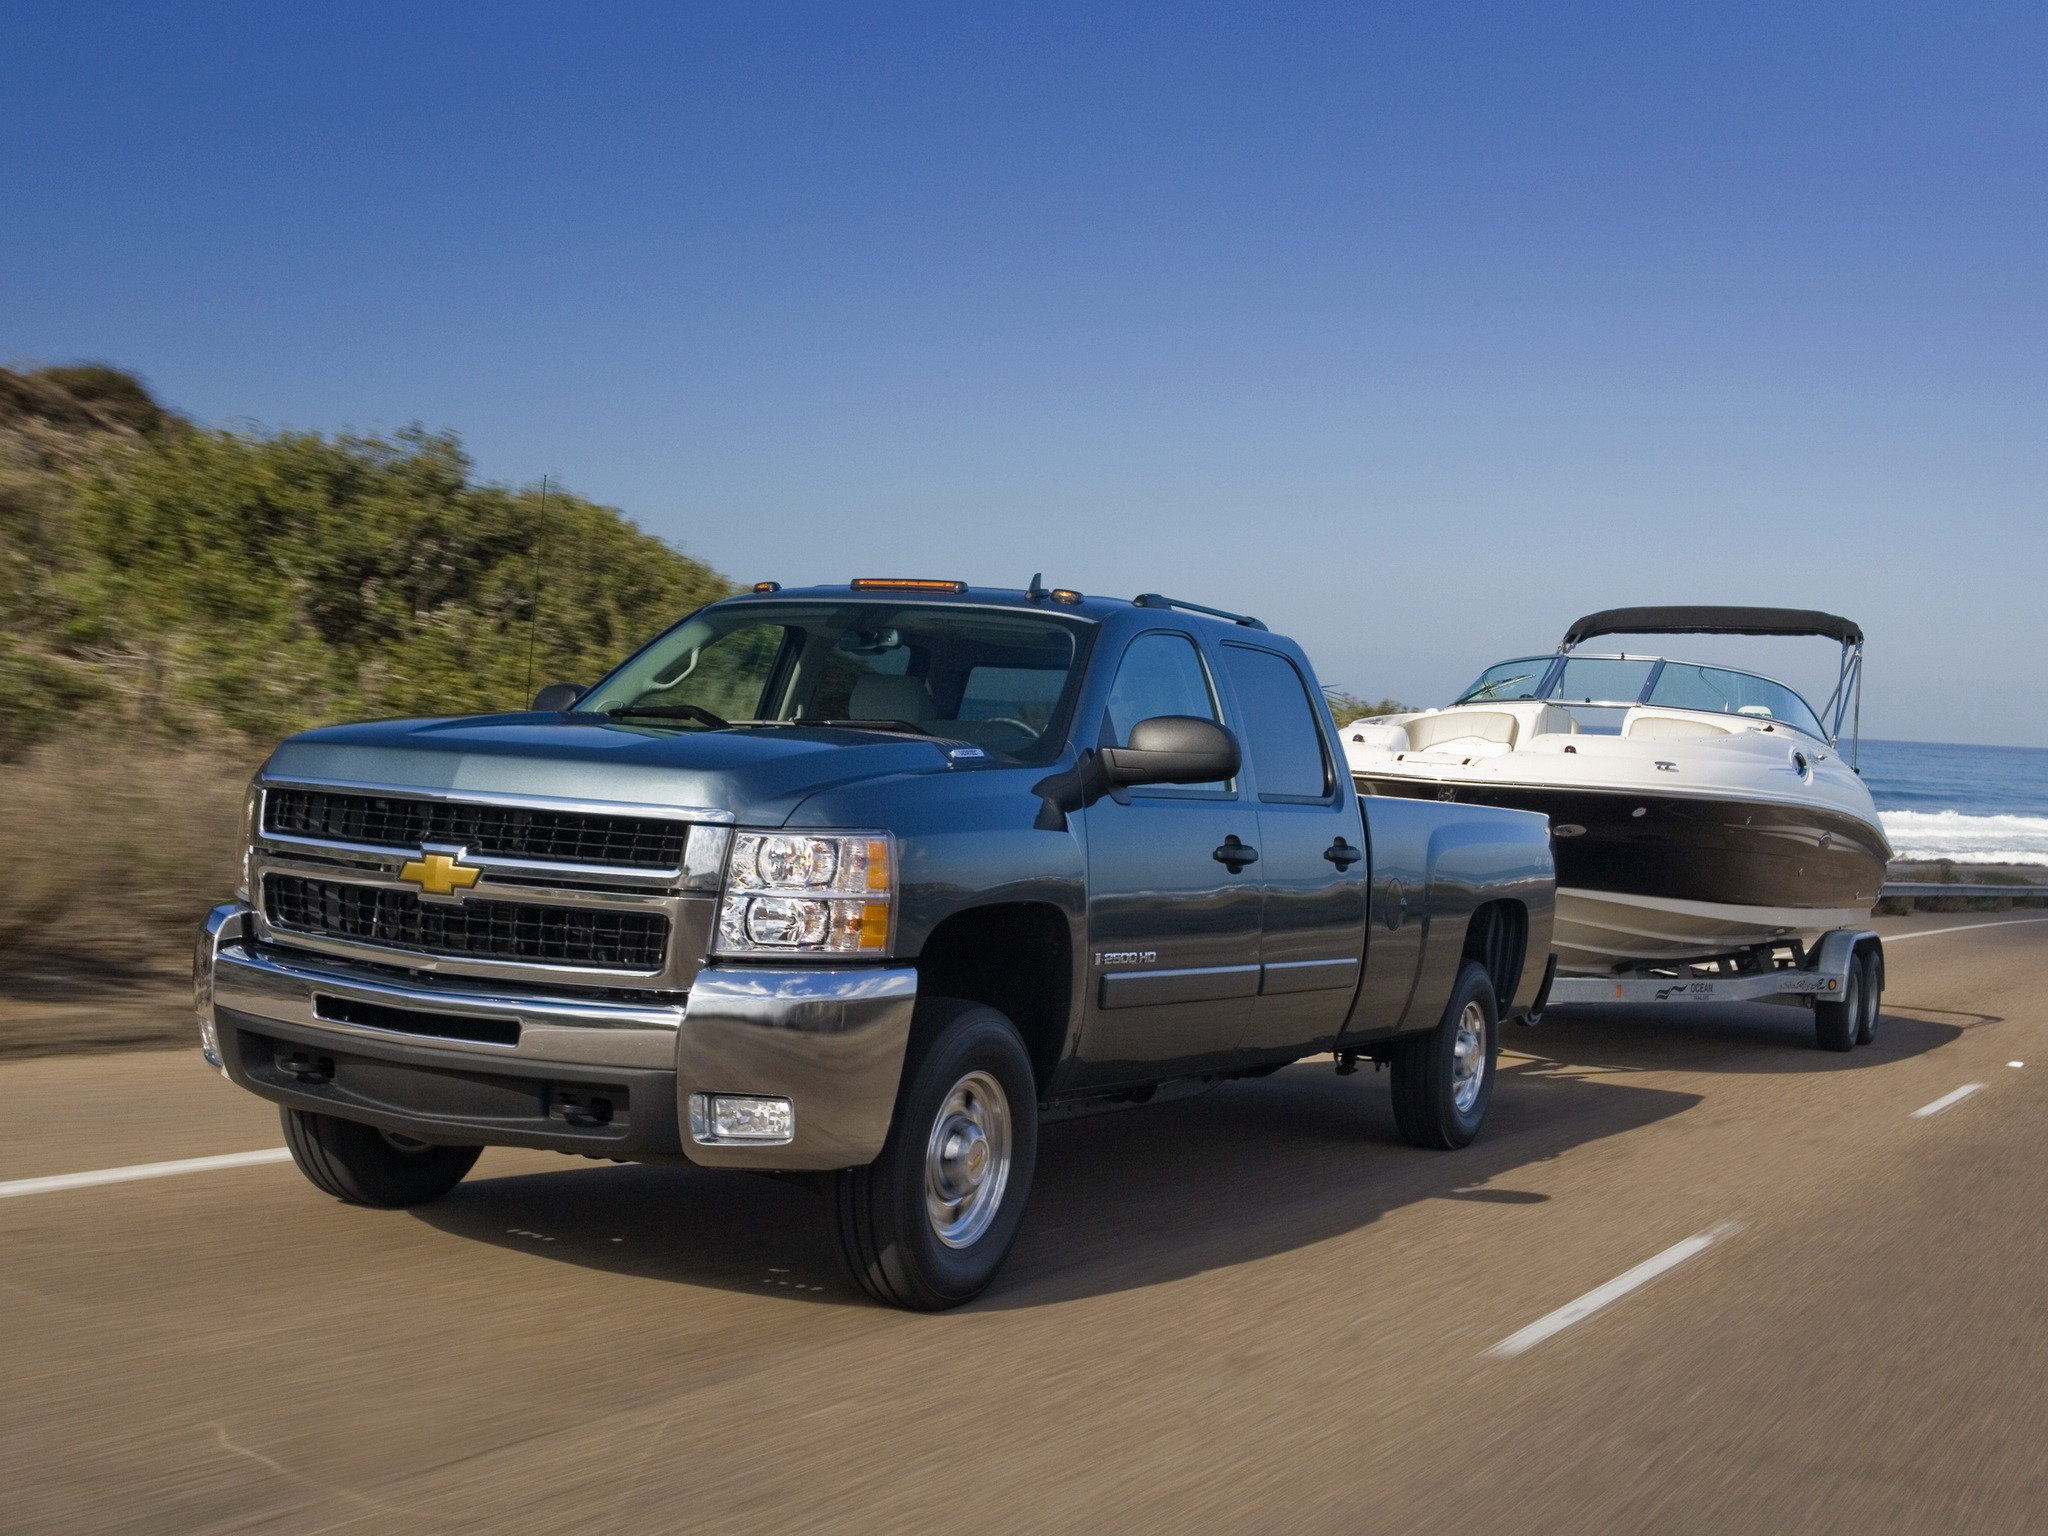 Best used suvs and used pickups for sale - Chevrolet Silverado